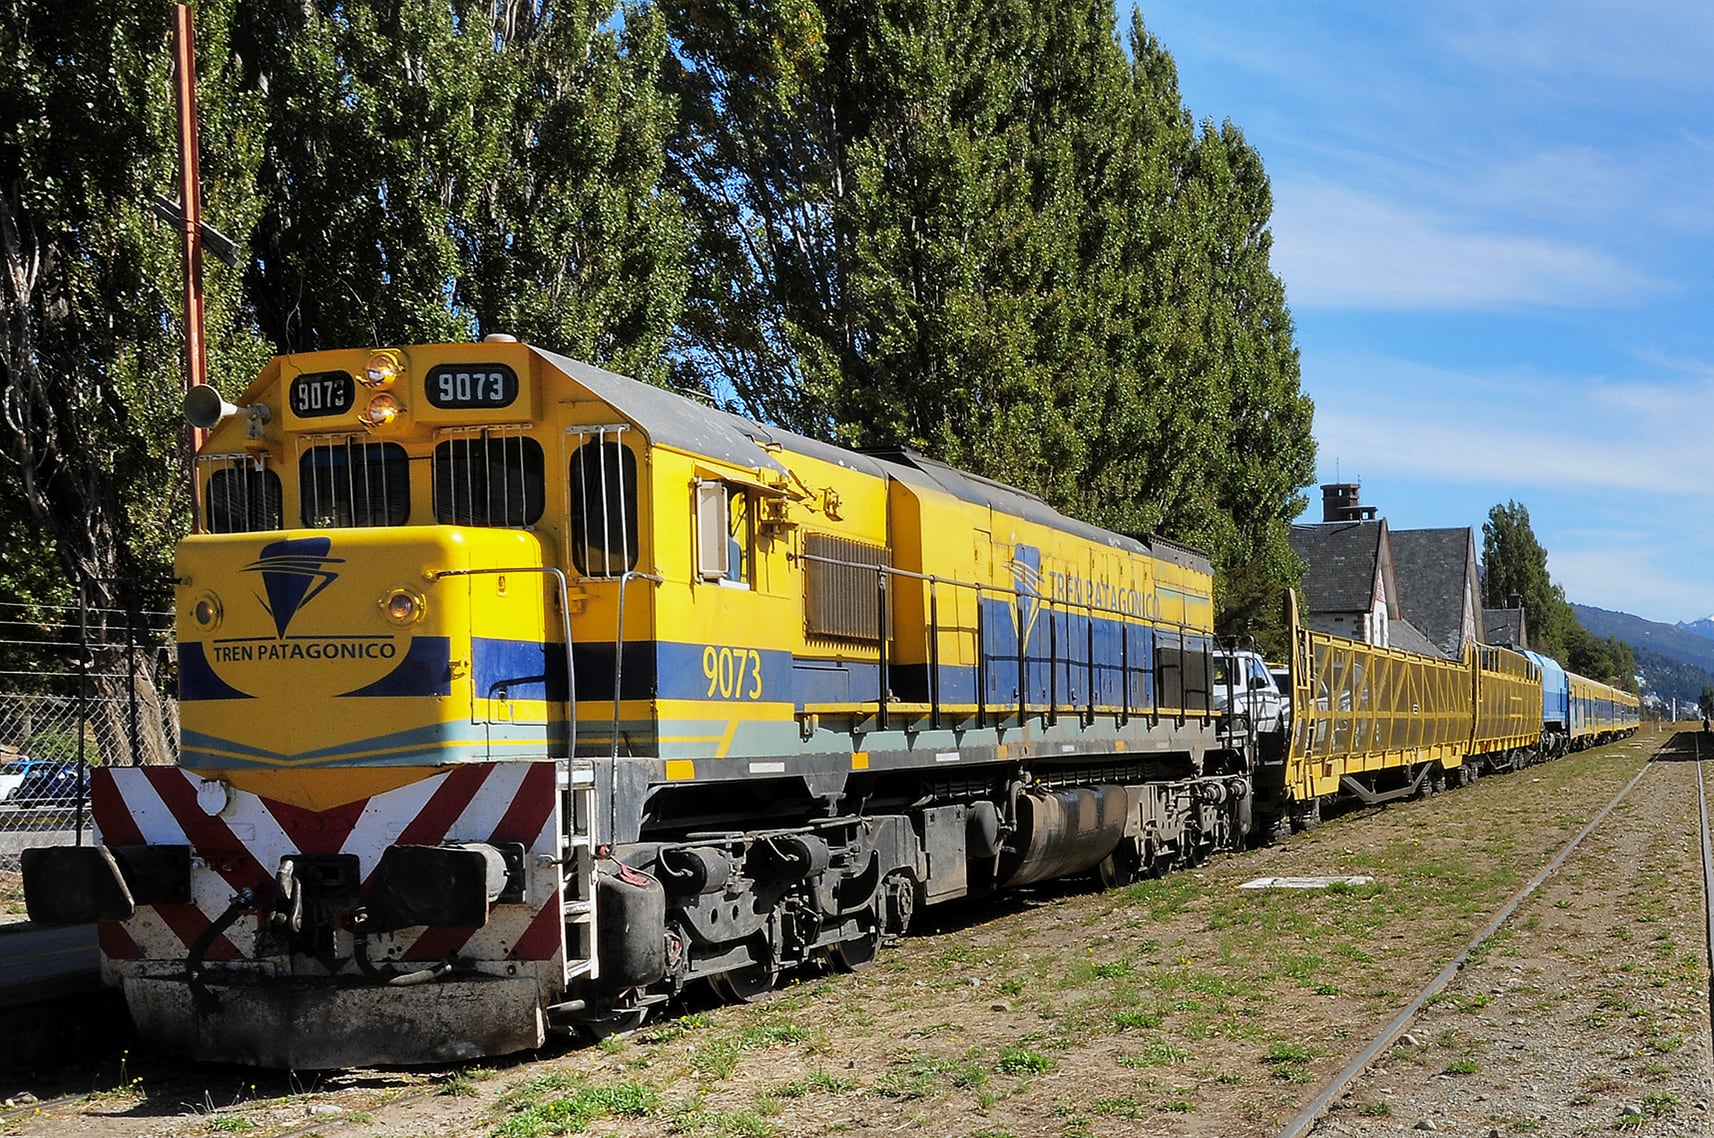 Tren Patagonico in Bariloche ready for the departure to Viedma